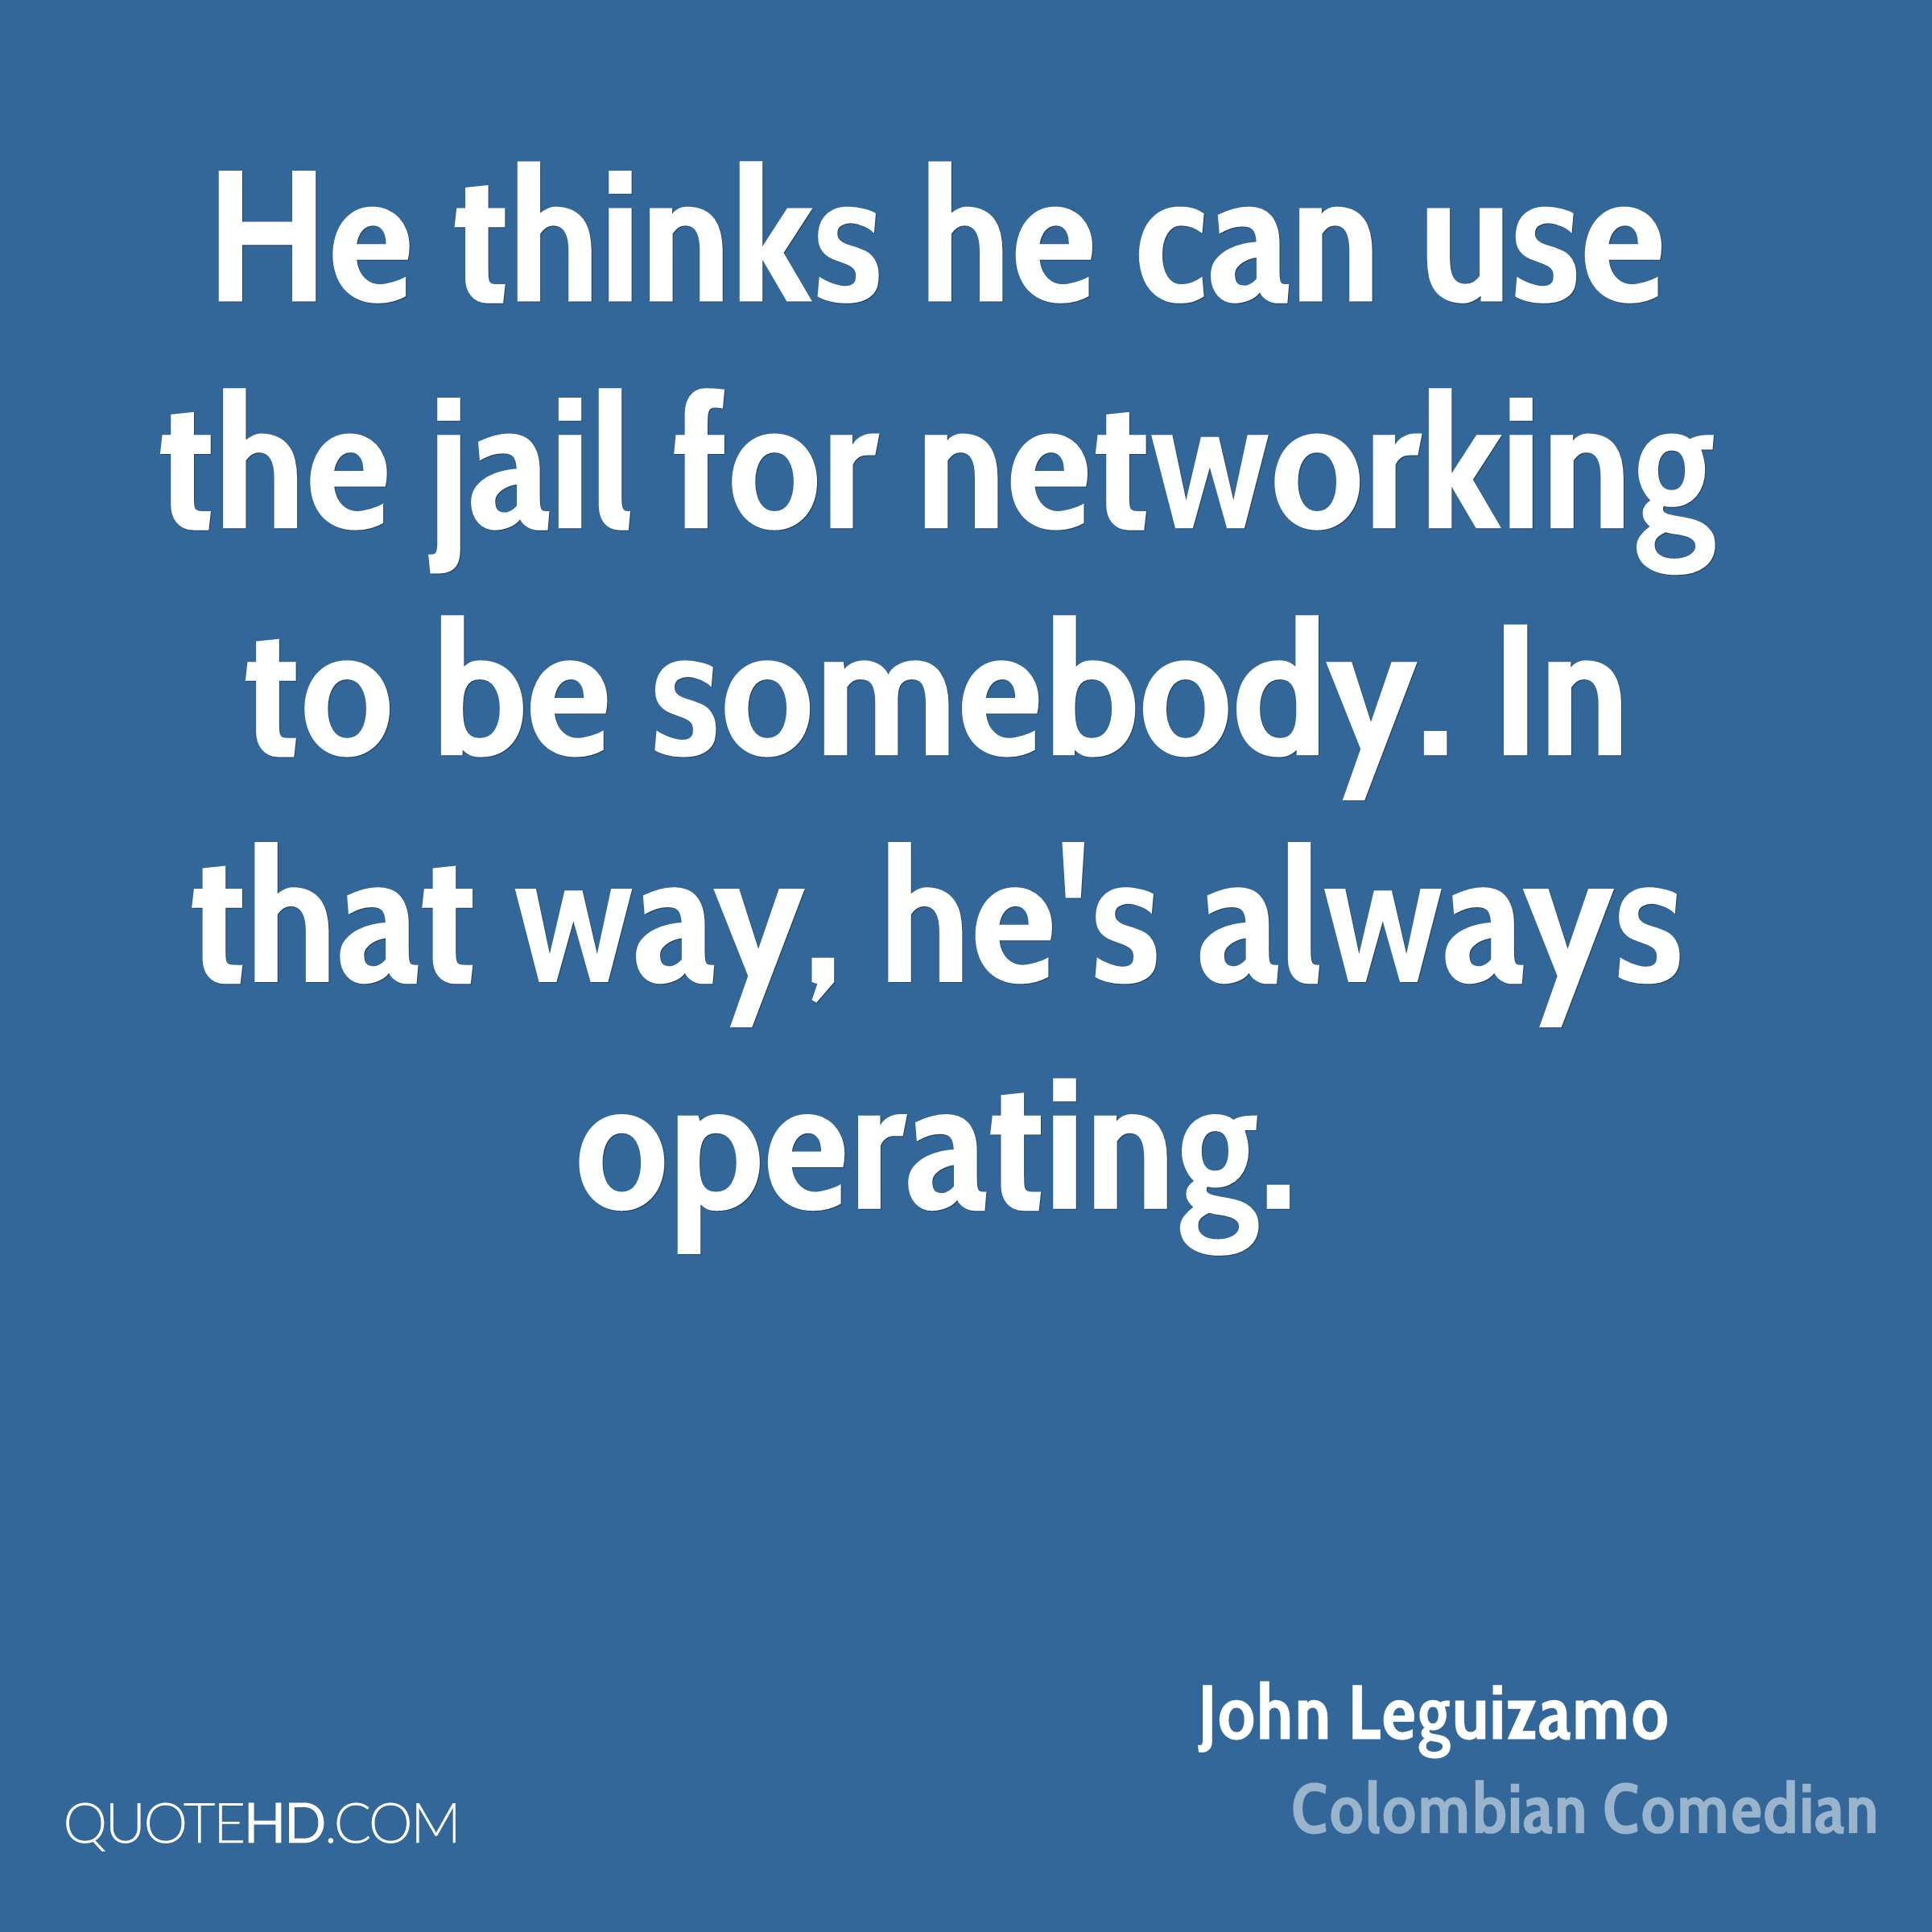 He thinks he can use the jail for networking to be somebody. In that way, he's always operating.